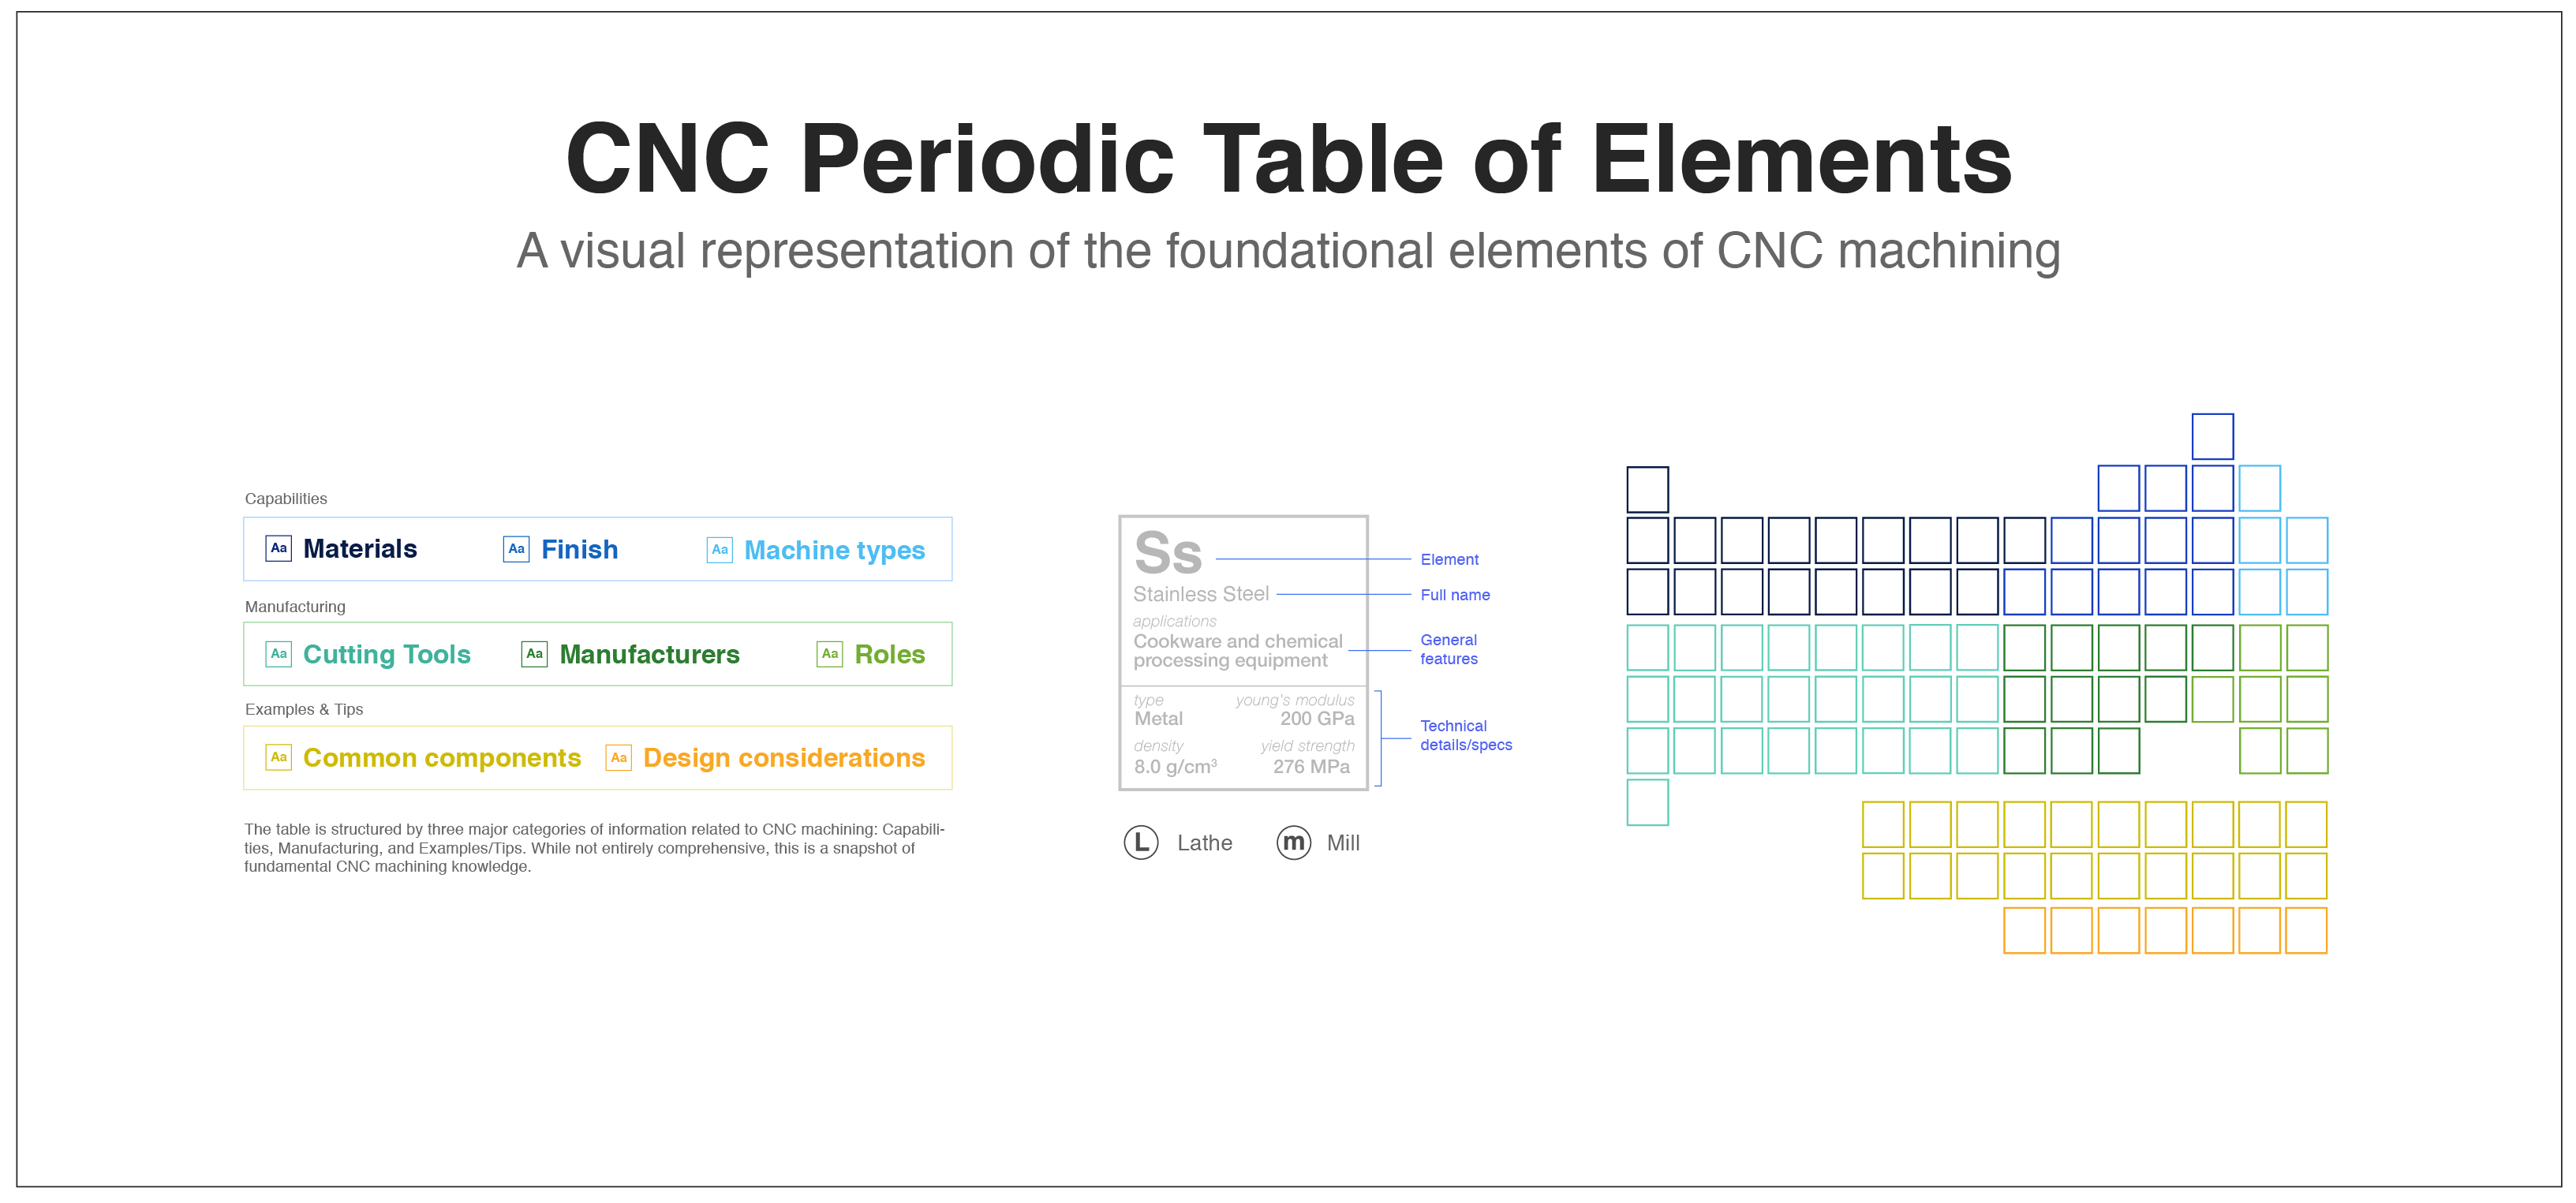 The cnc periodic table of elements poster giveaway contest is back fictiv cnc periodic table of elements legend urtaz Choice Image